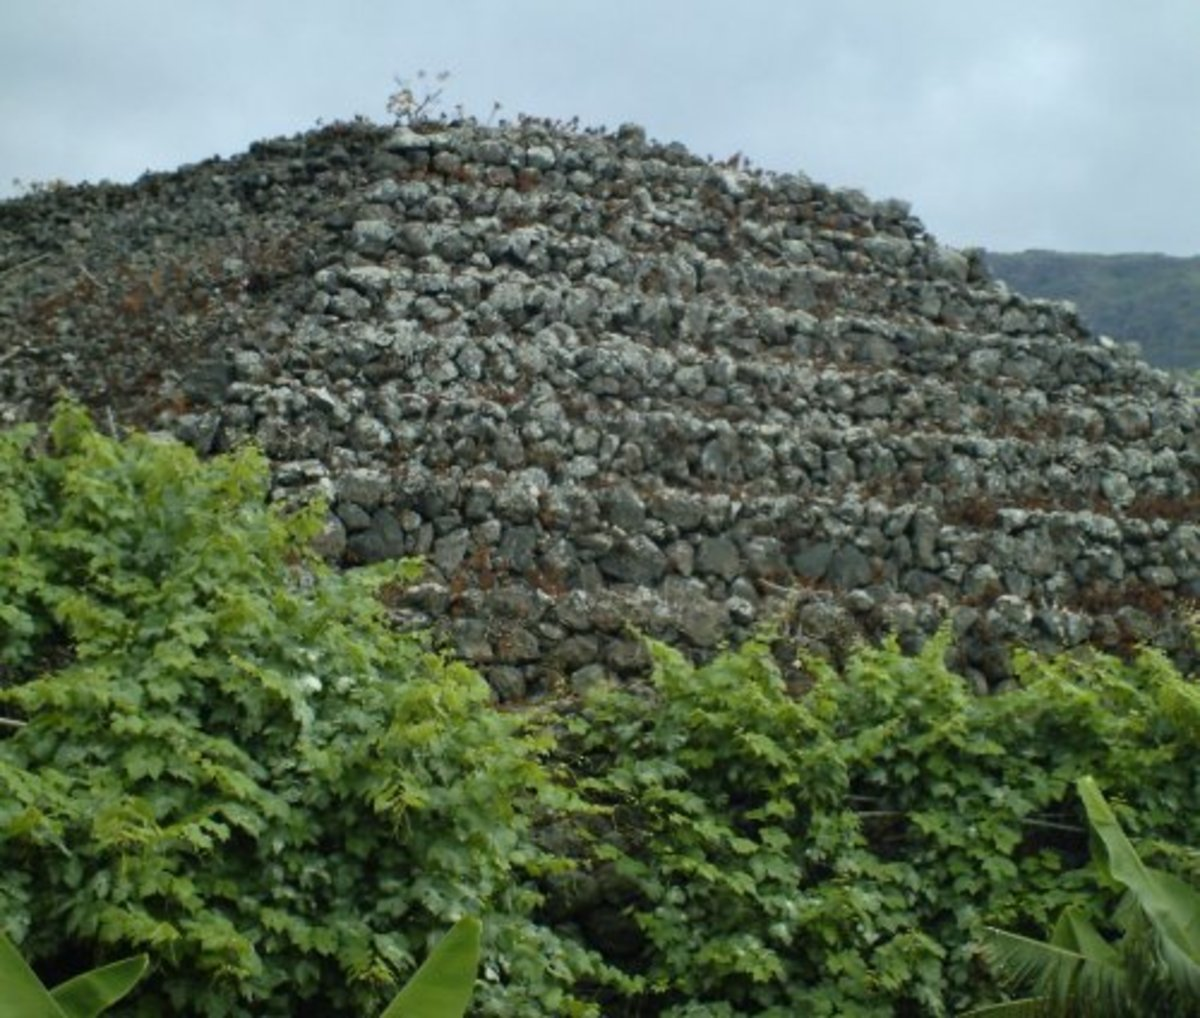 The mysterious pyramids of Tenerife in the Canary Islands